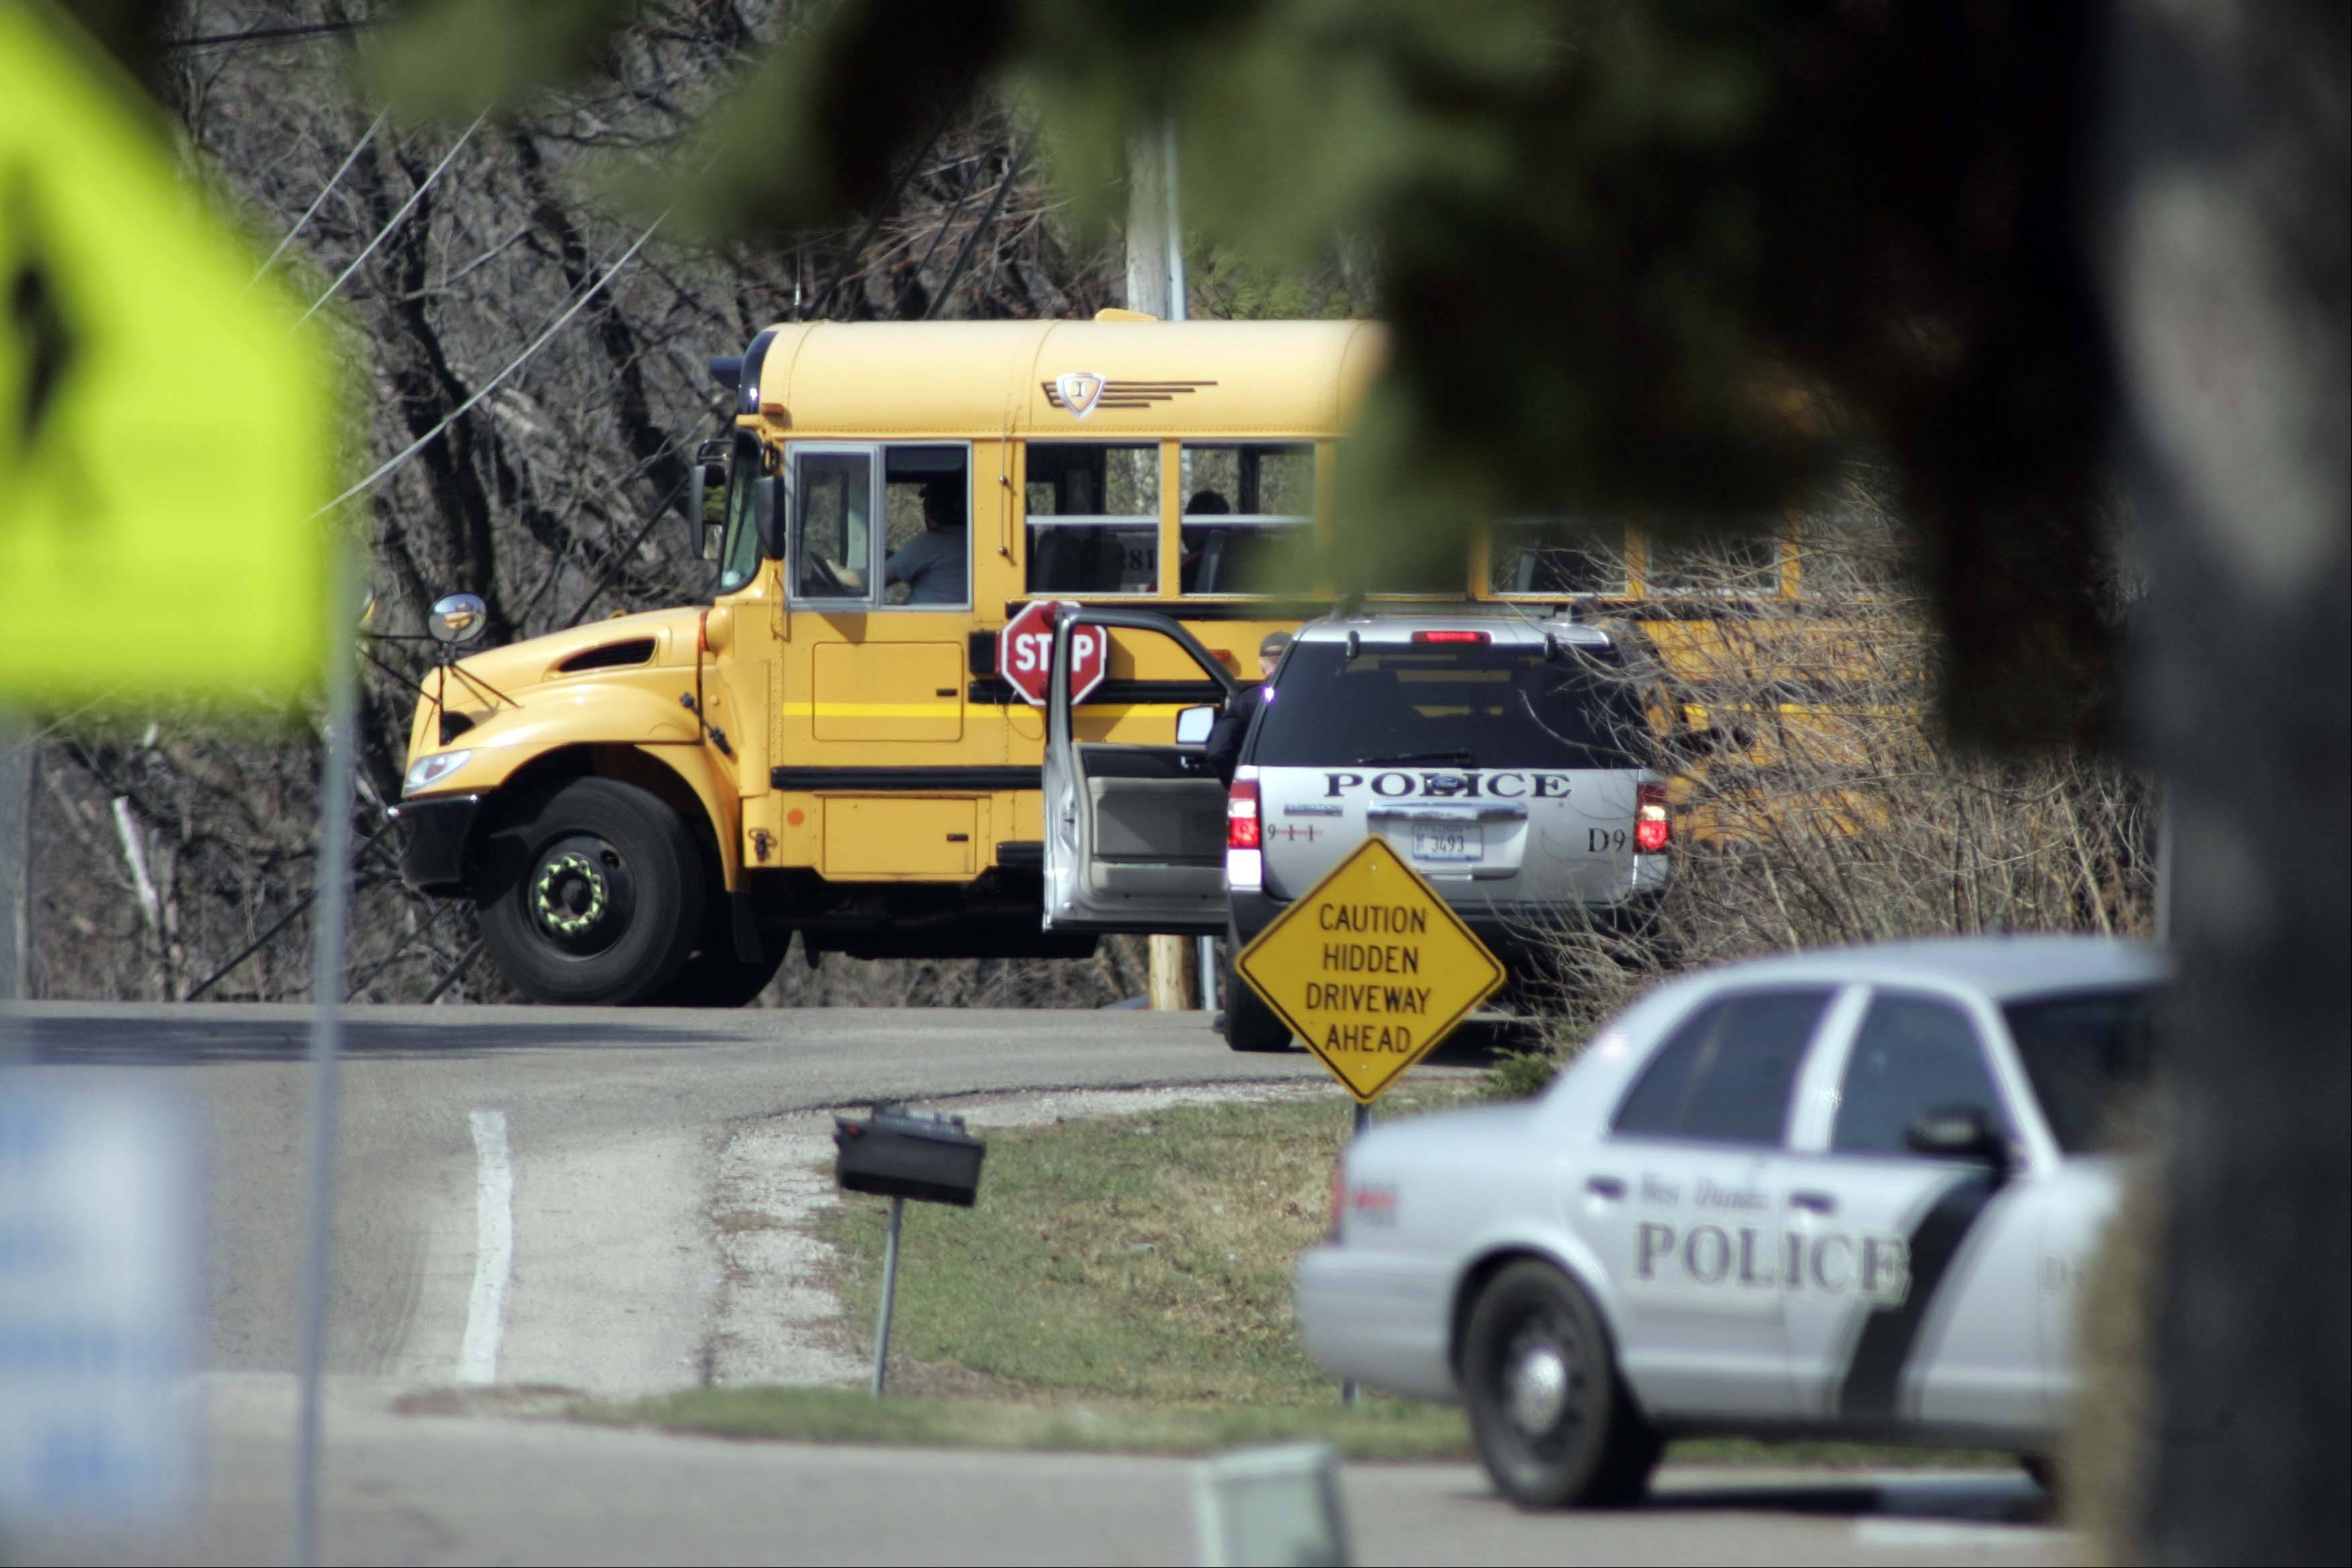 A school bus leaves Dundee-Crown High School, which was put on lockdown Friday morning after a threat of a shooting at the school. The lockdown was lifted when the student believed to have made the threat was determined to be off-campus.